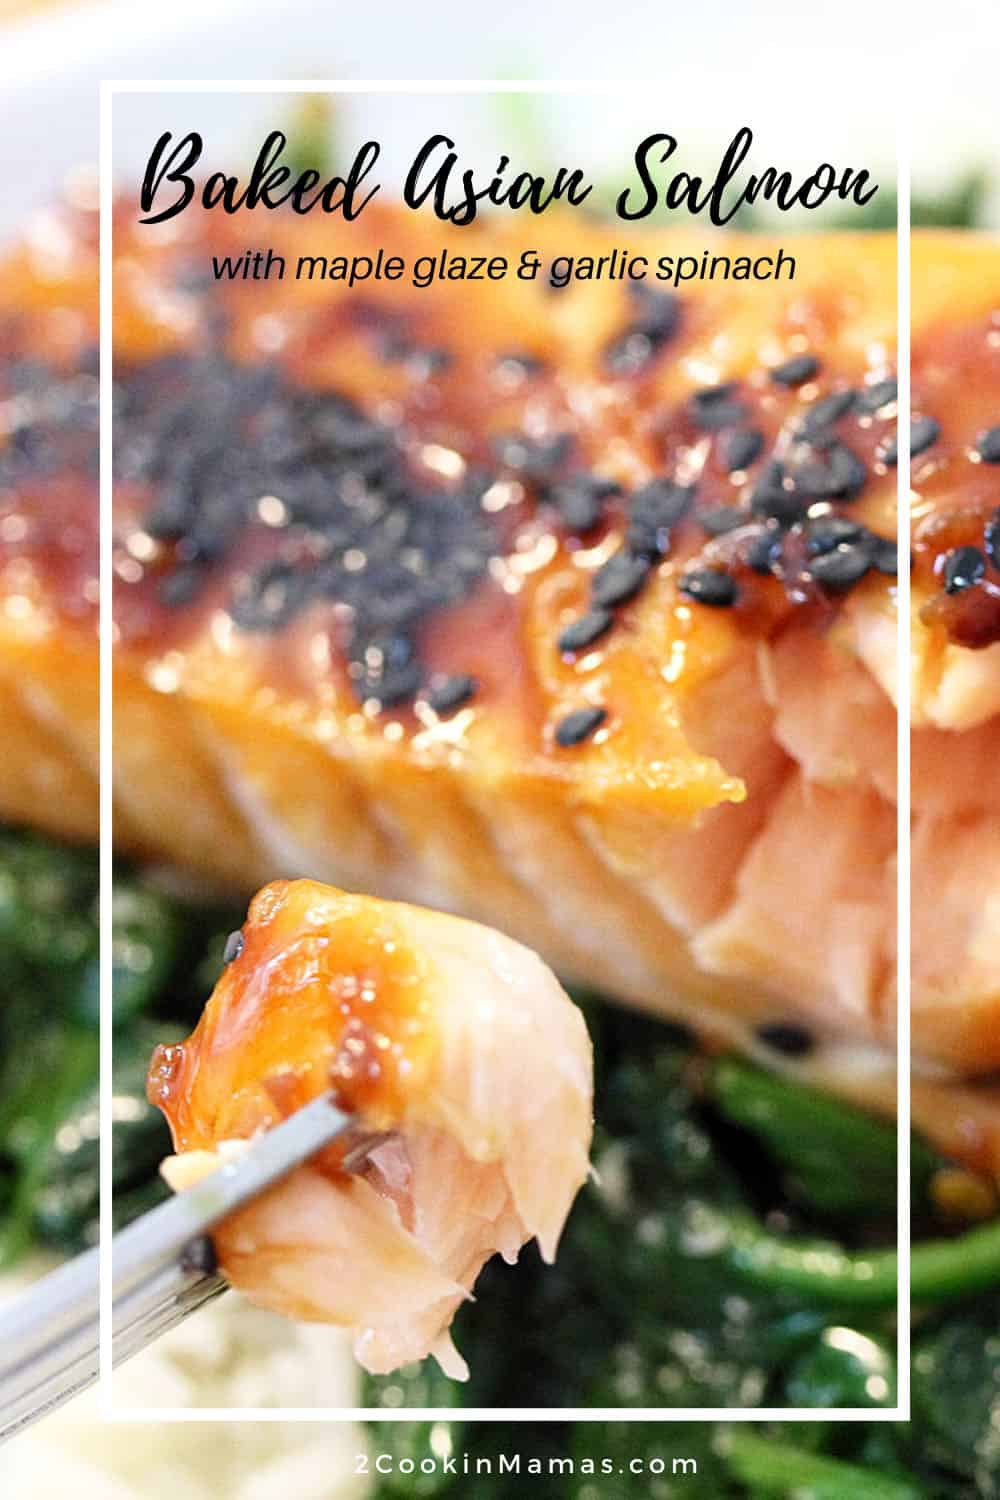 Baked Asian Salmon with Maple Glaze